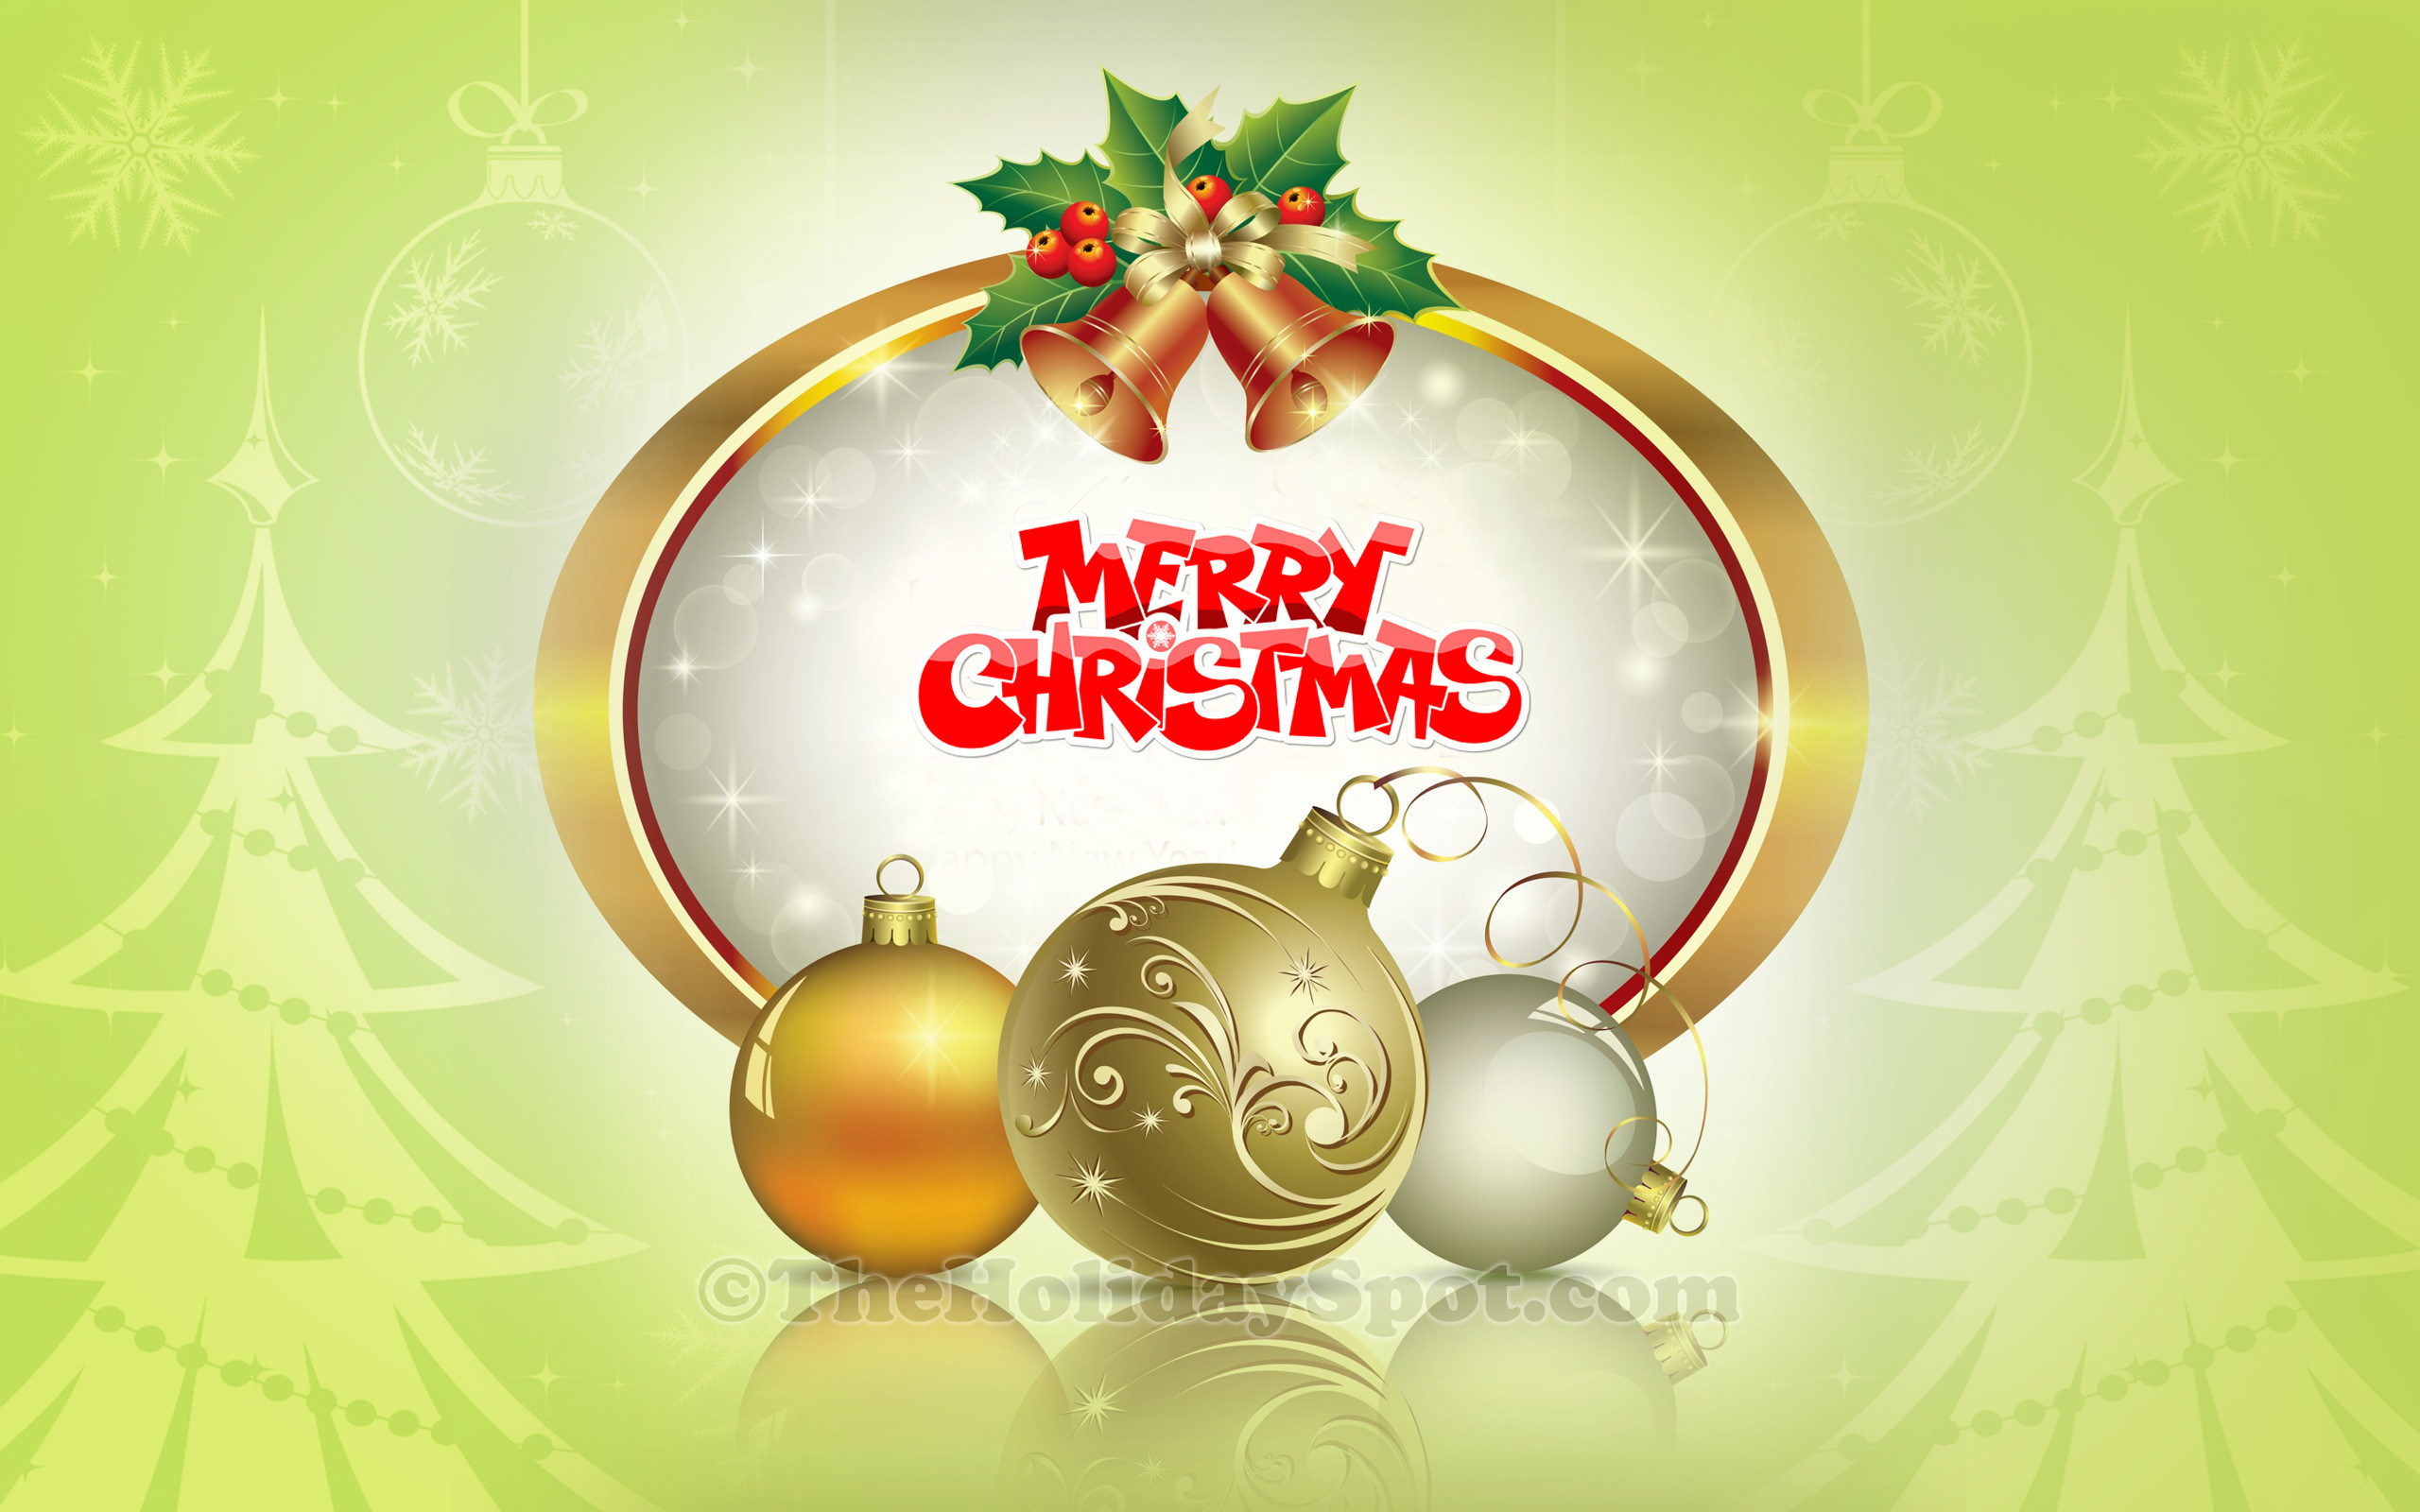 2560x1600 Merry Christmas Decoration Wallpaper